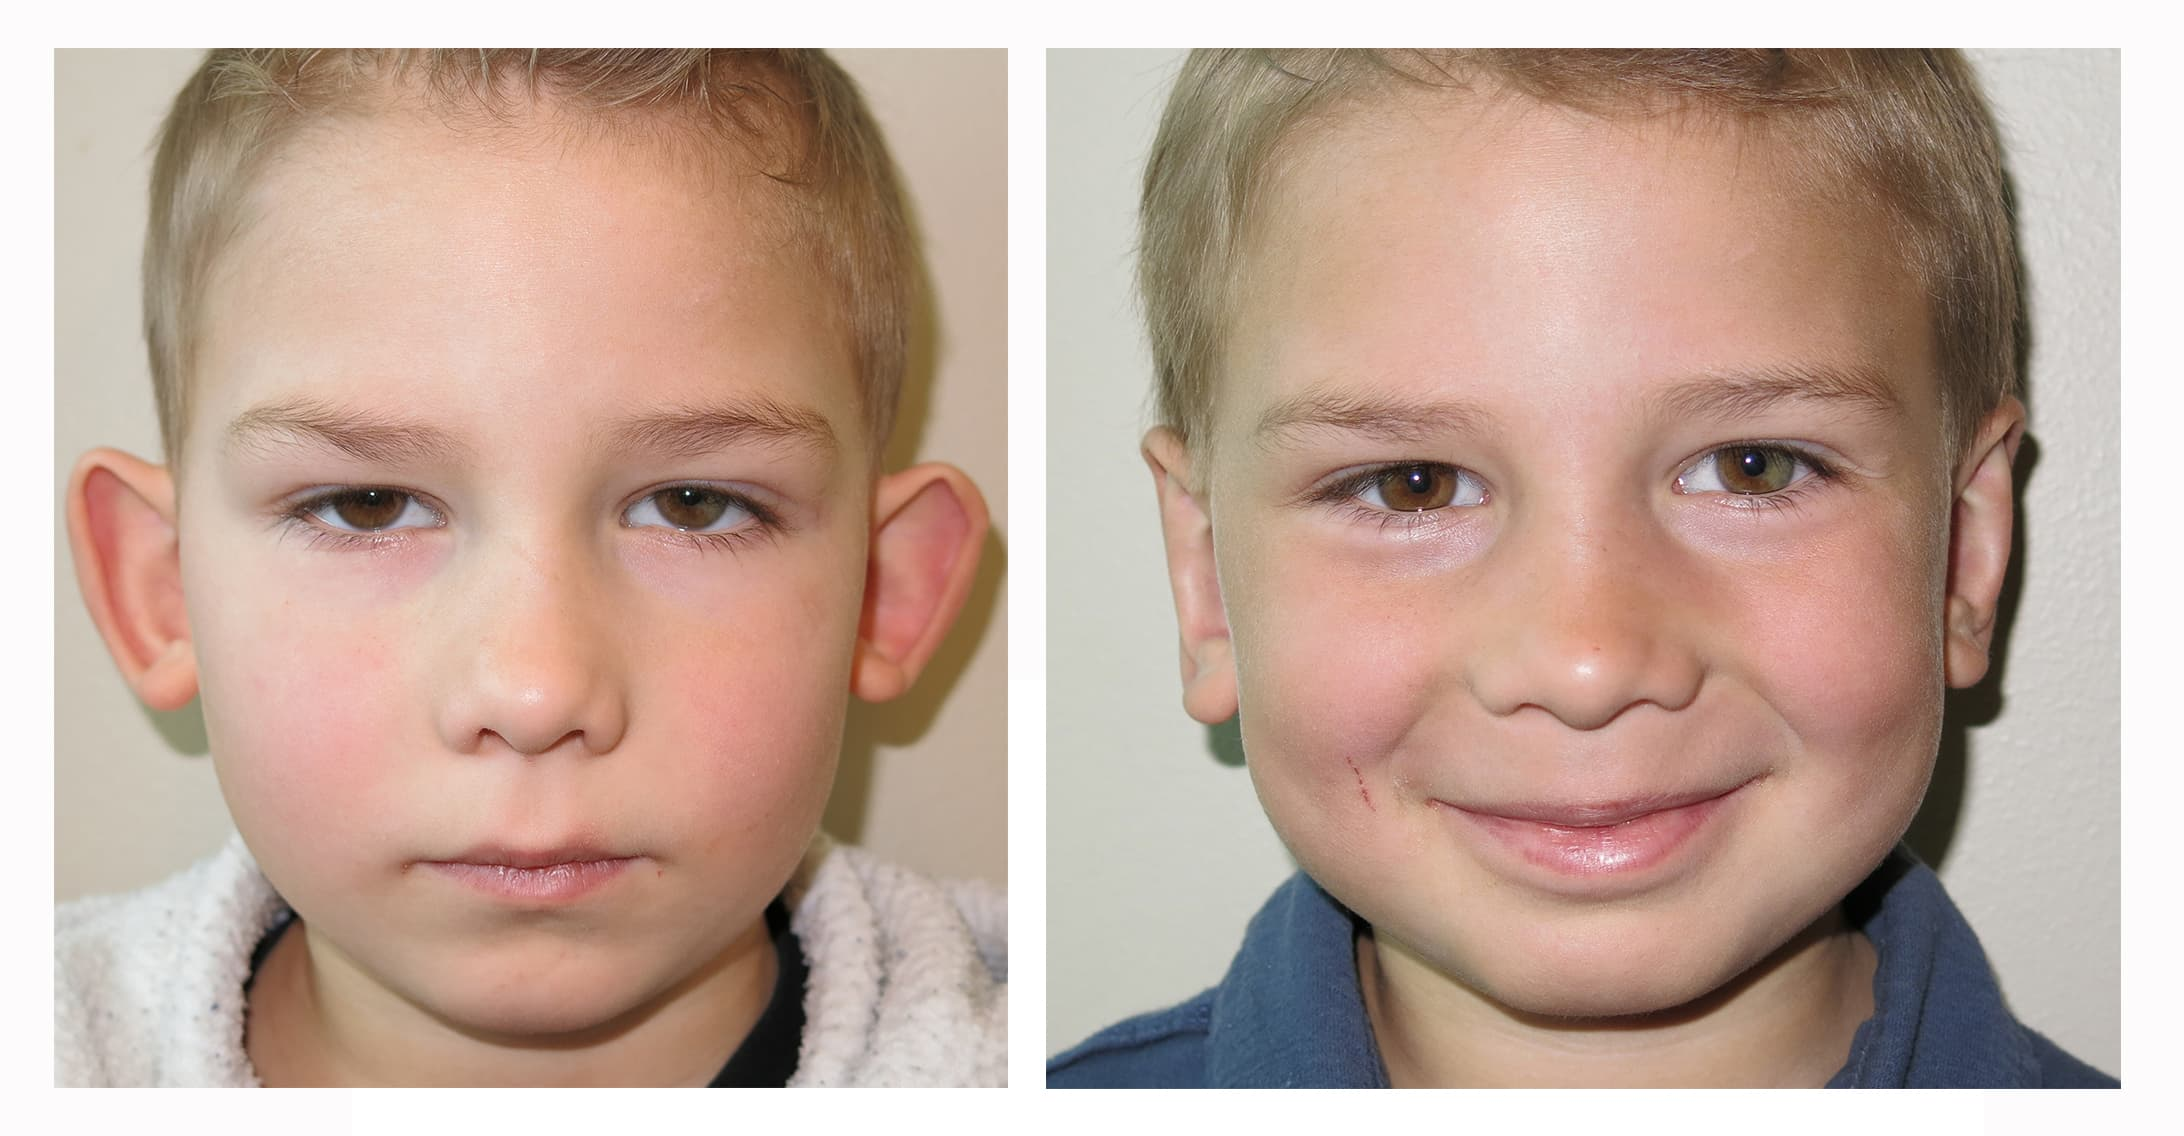 Ear Plastic Surgery Before And After Photos photo - 1